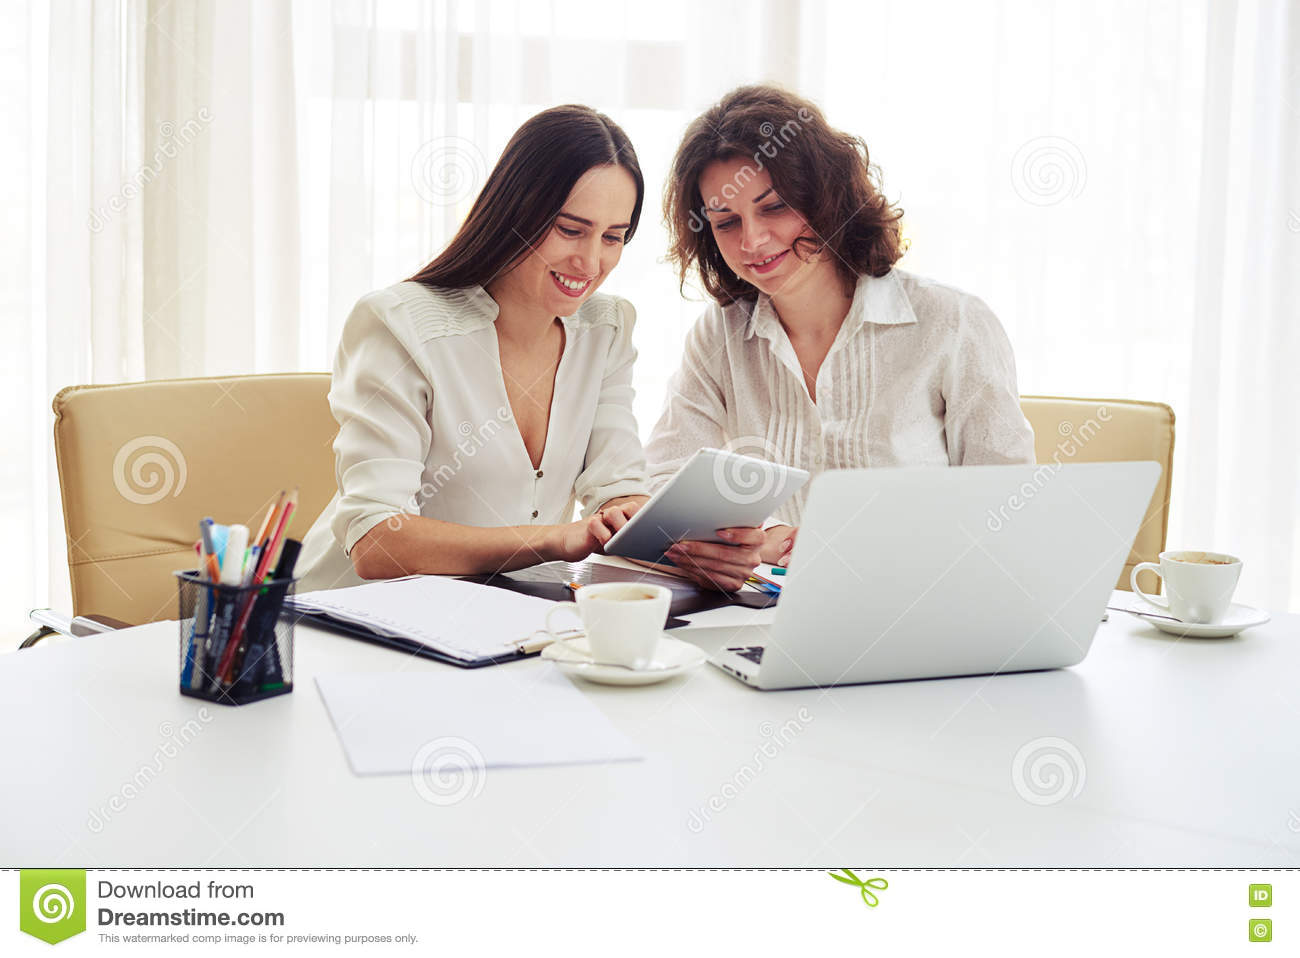 Two young women working together with gadgets in the office